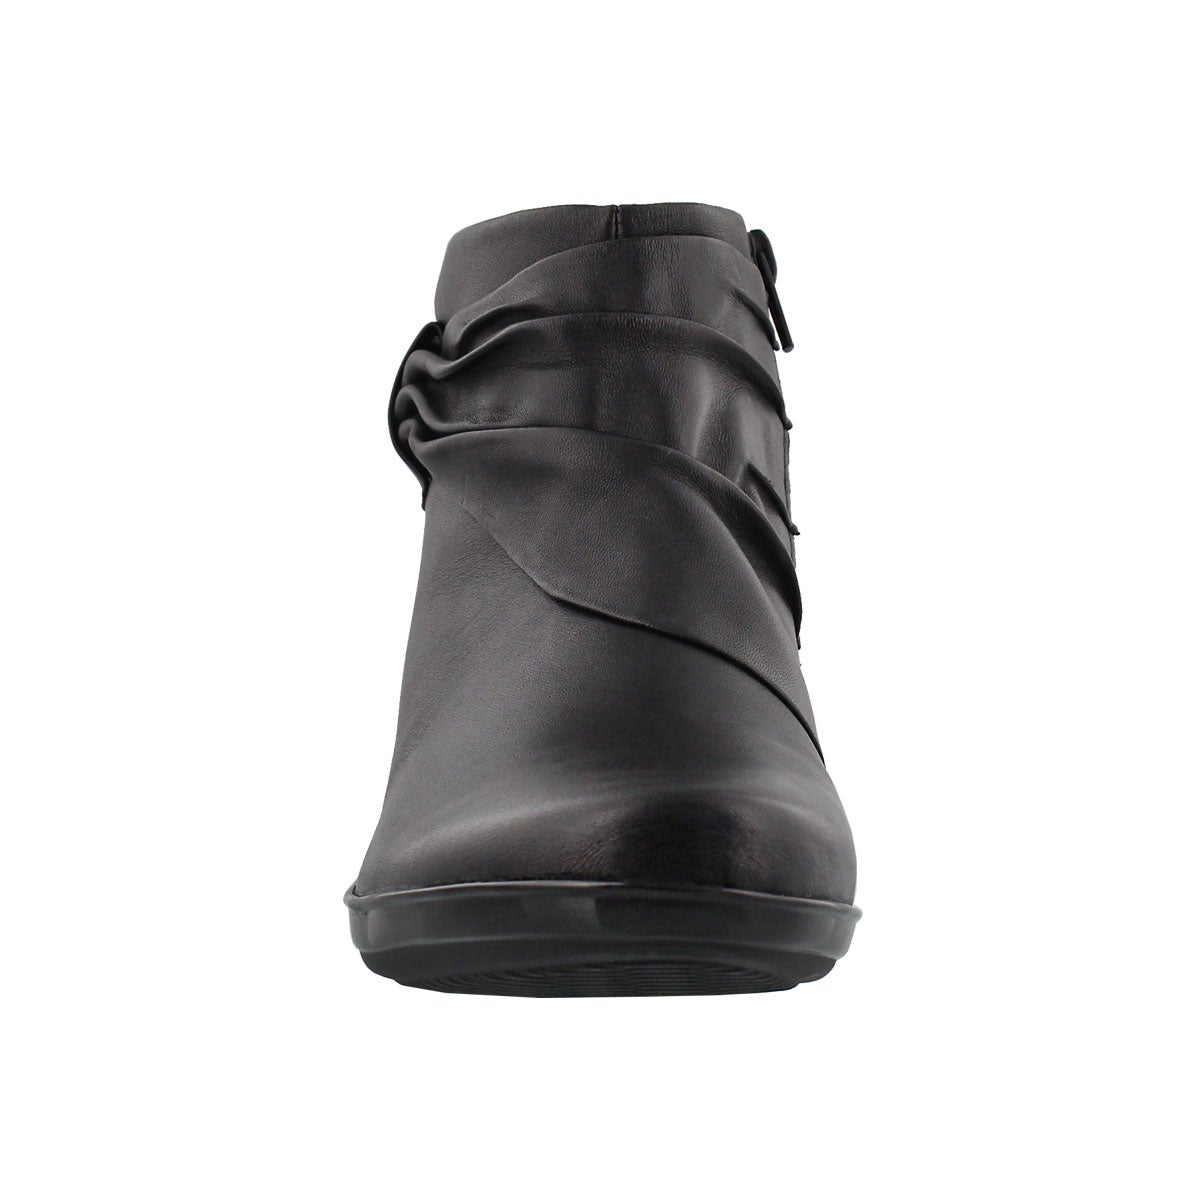 Lds Everlay Mandy black ankle boot